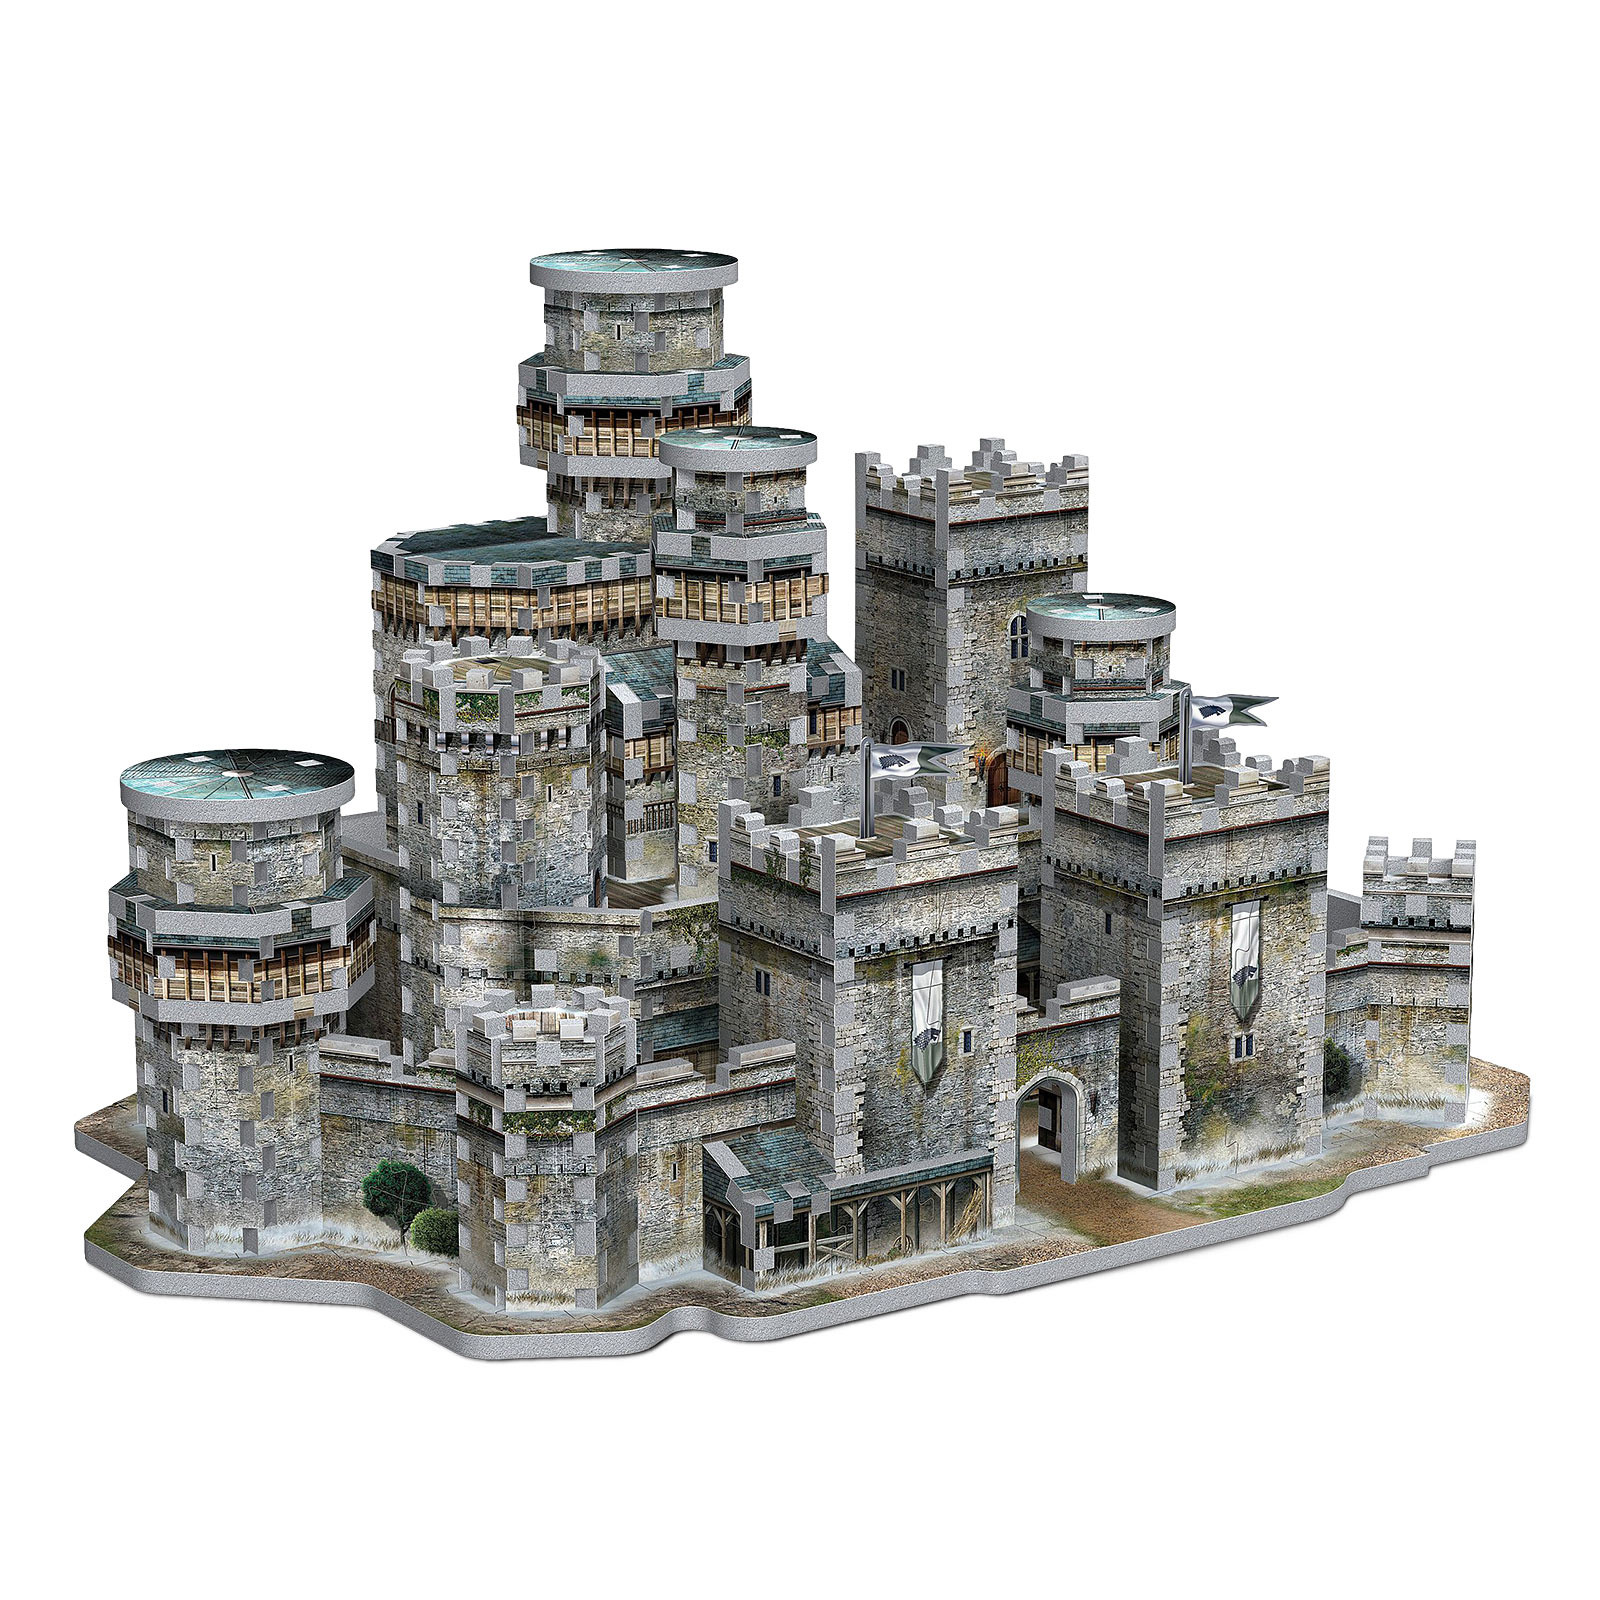 Game of Thrones - Winterfell 3D Puzzle